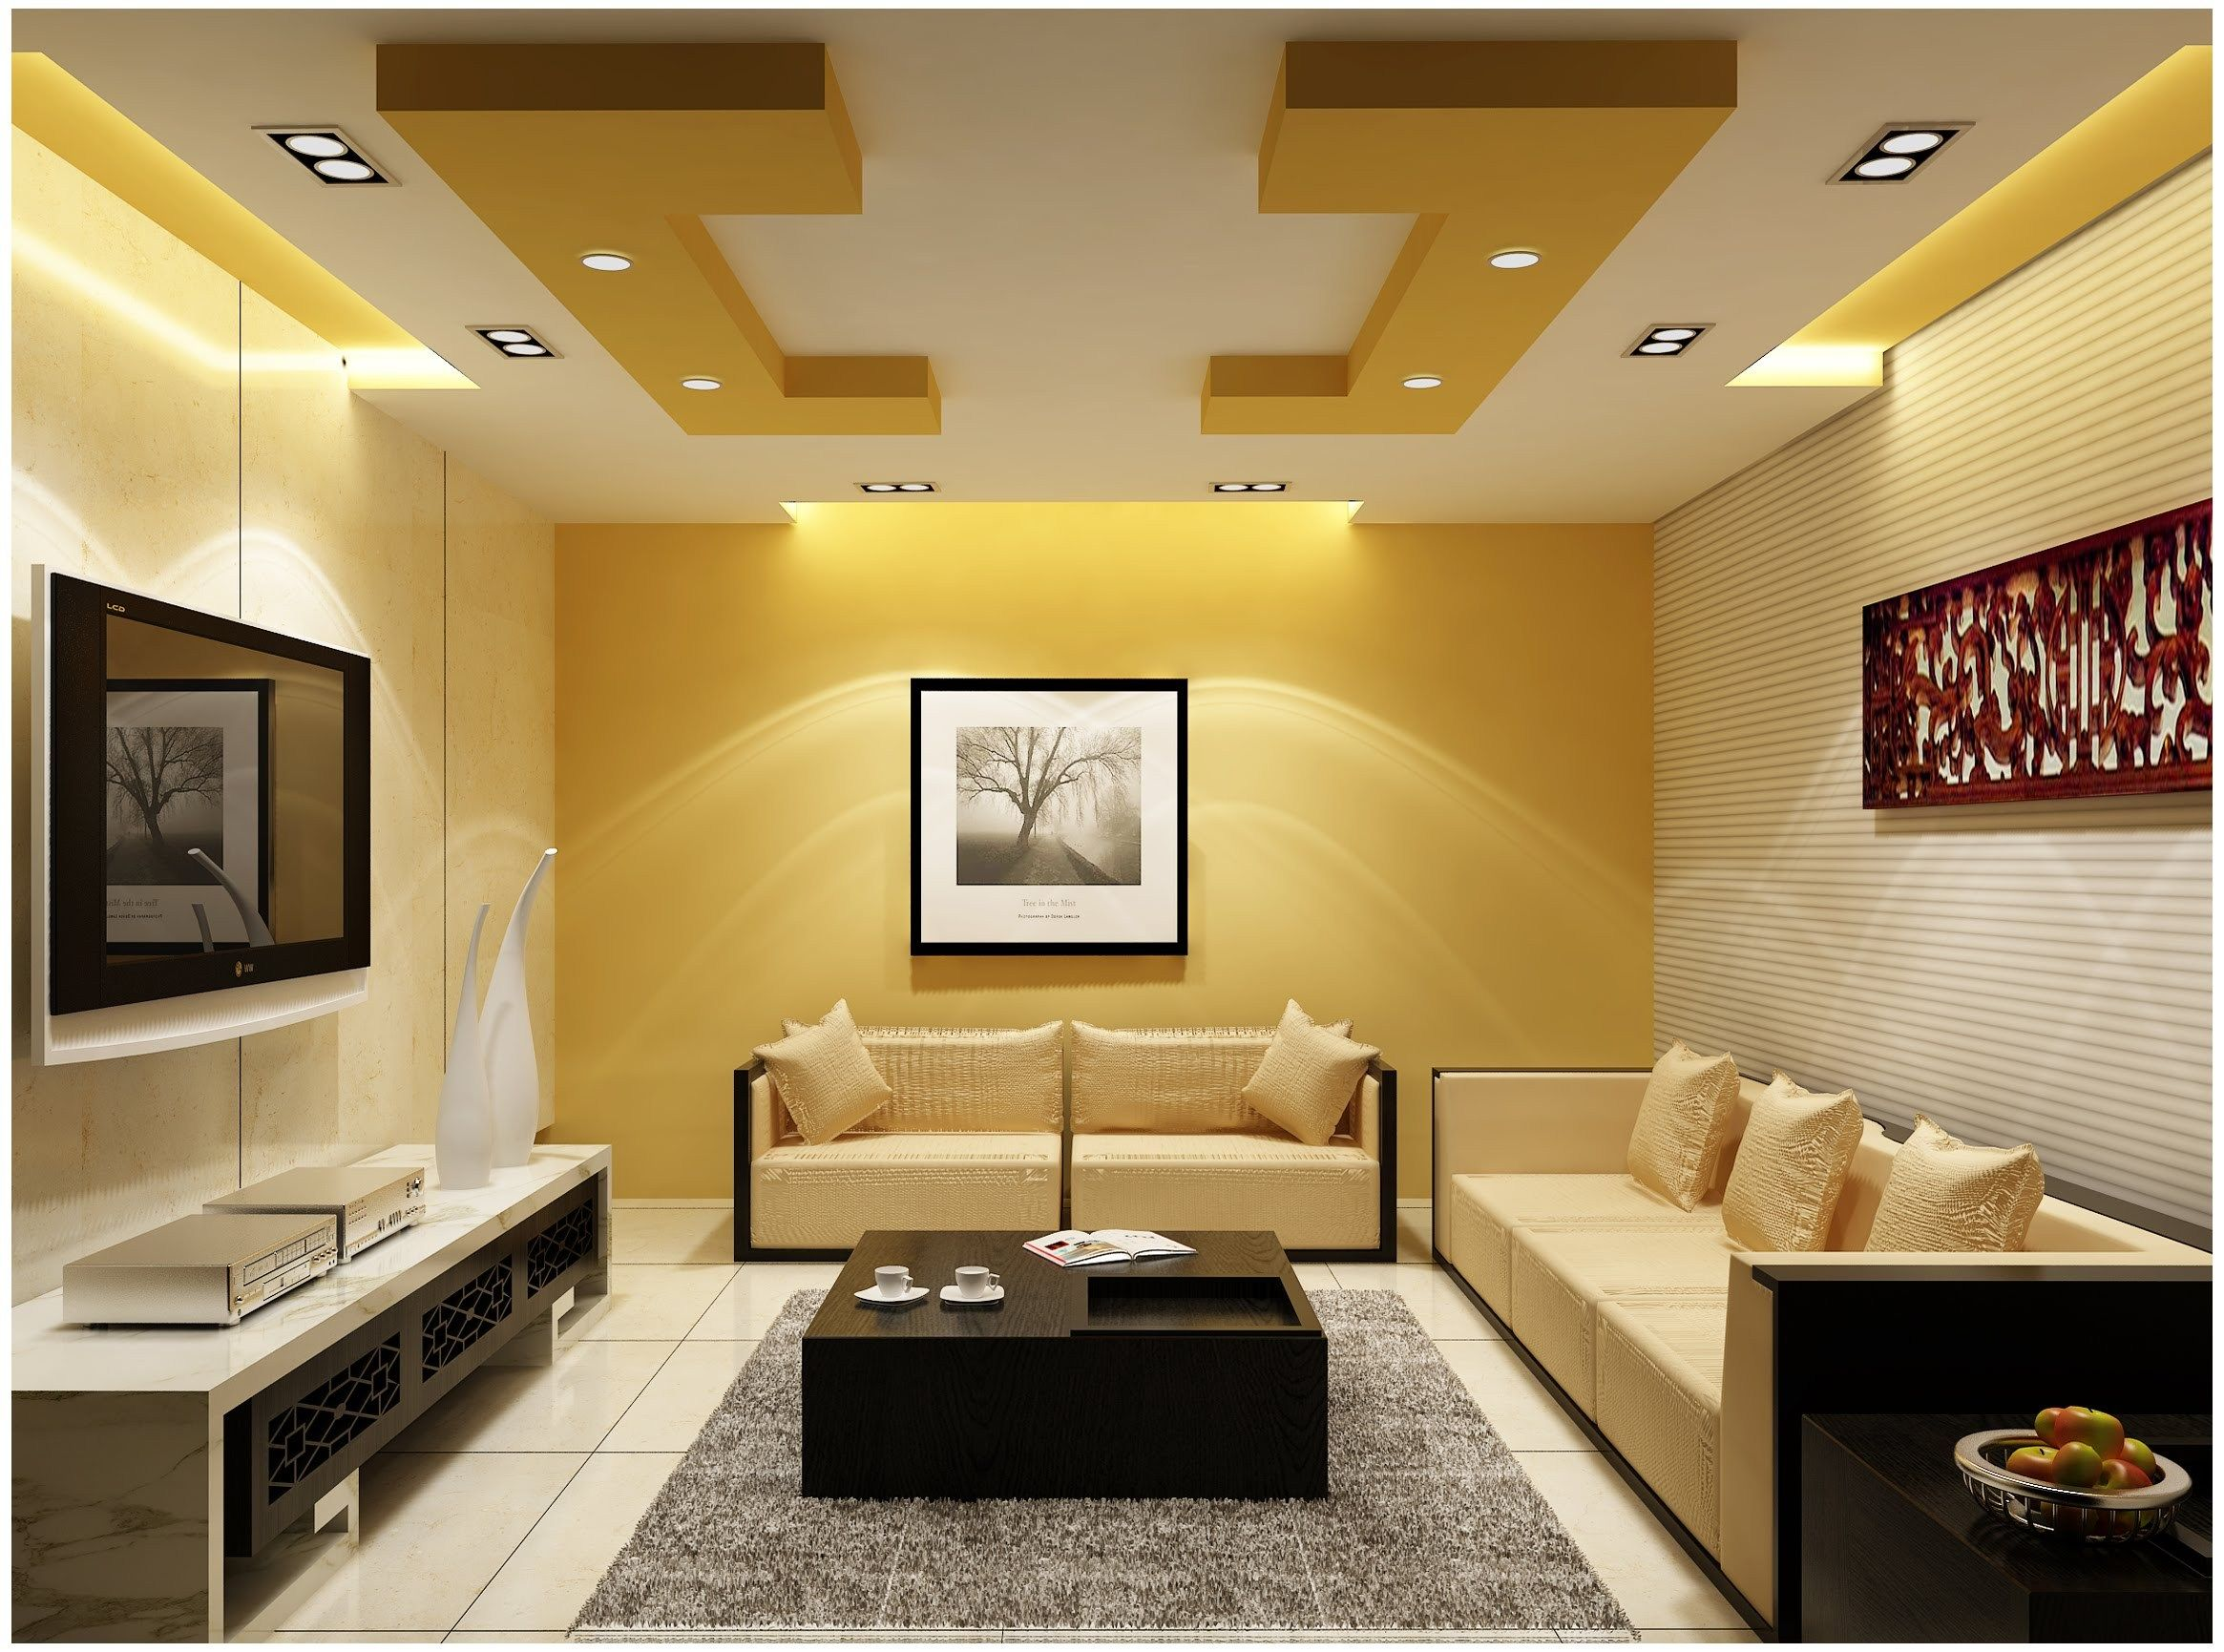 Best modern living room ceiling design 2017 100 Unique Light     Best modern living room ceiling design 2017 100 Unique Light Fixtures with  Decorative Purpose